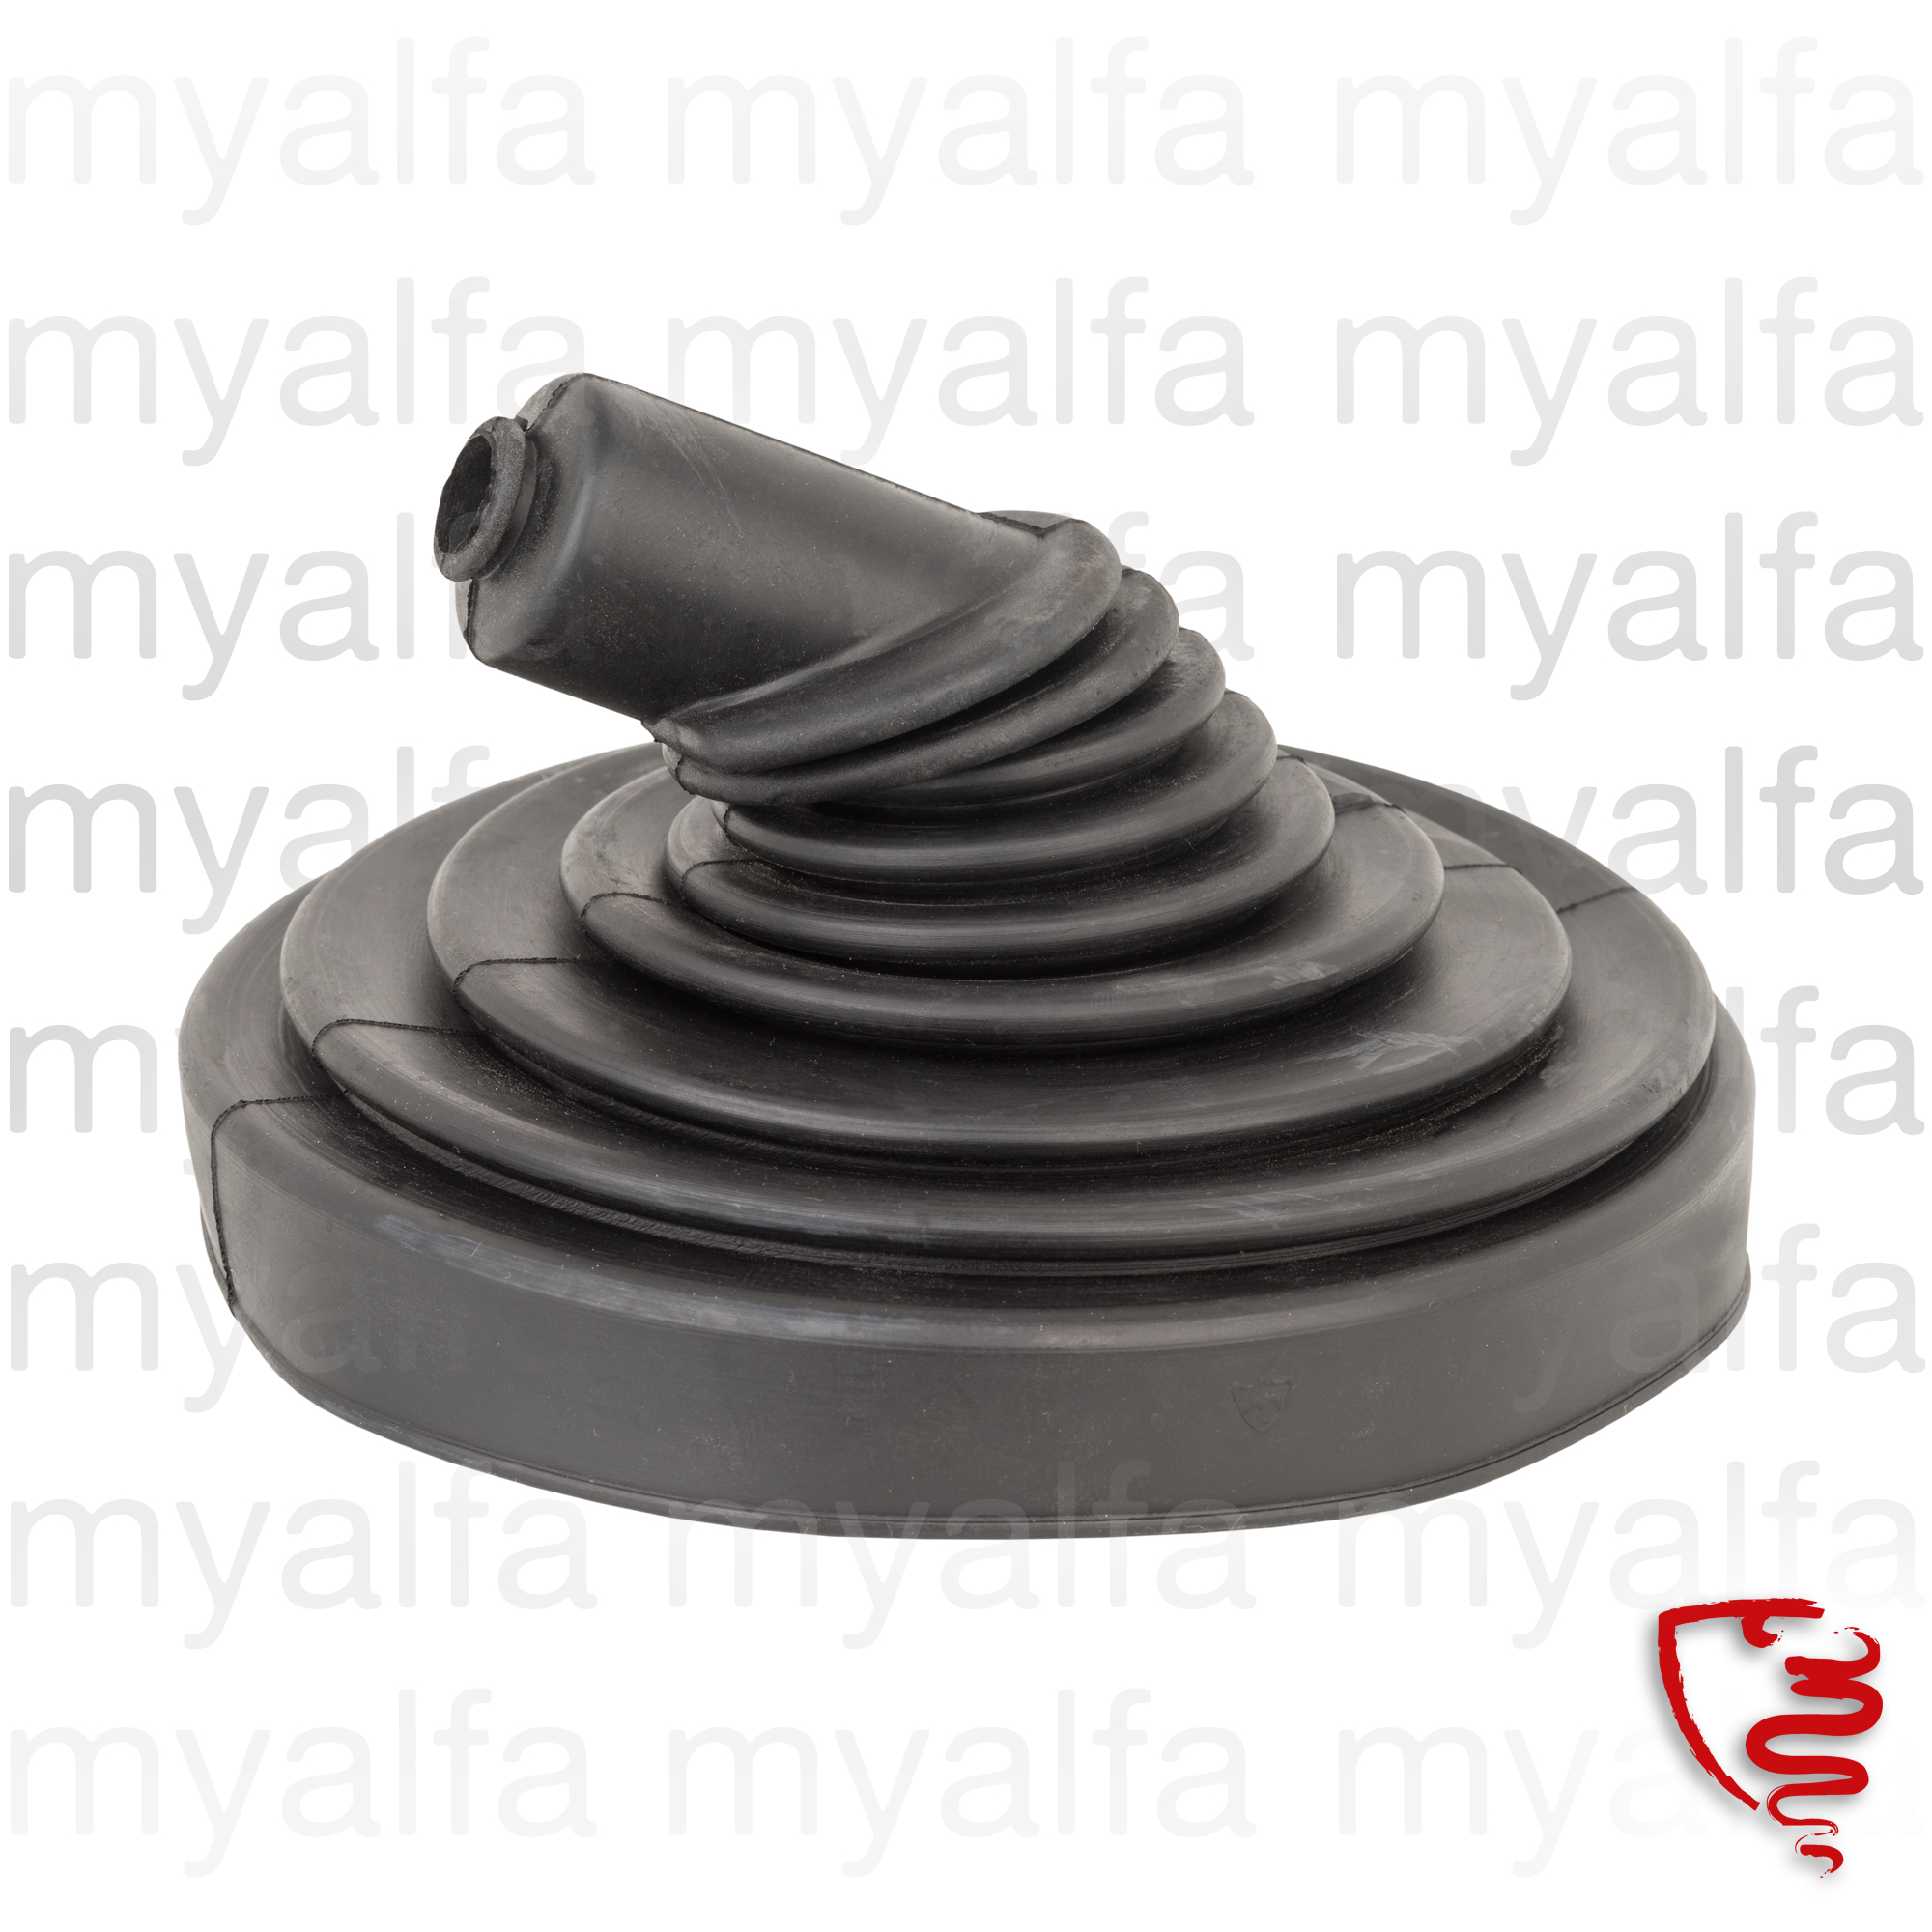 Bellows rubber gearbox double for 105/115, Gearbox, Mounting Parts